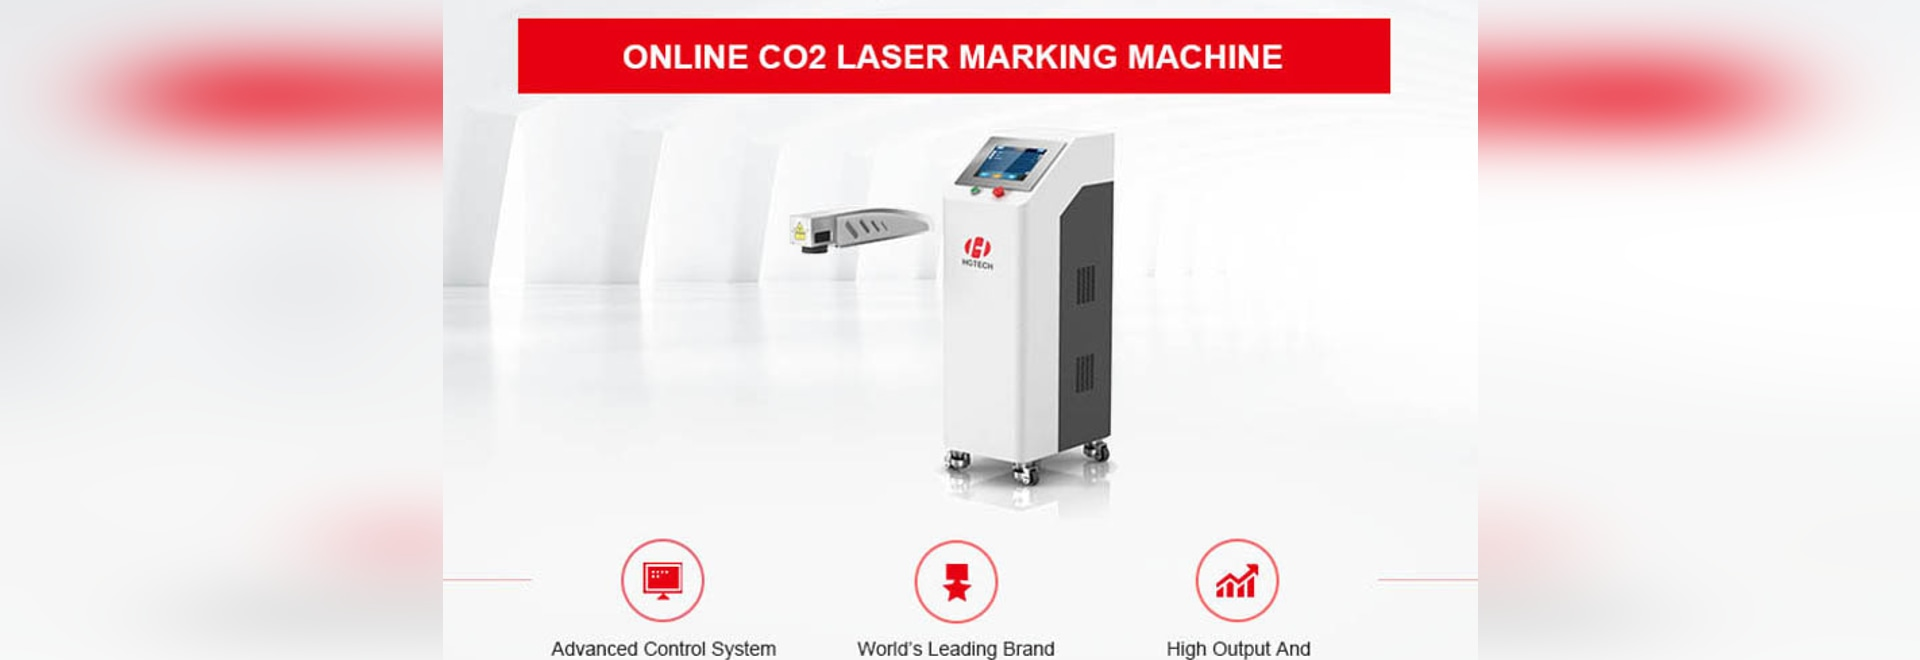 Online CO2 Laser Marking Machine